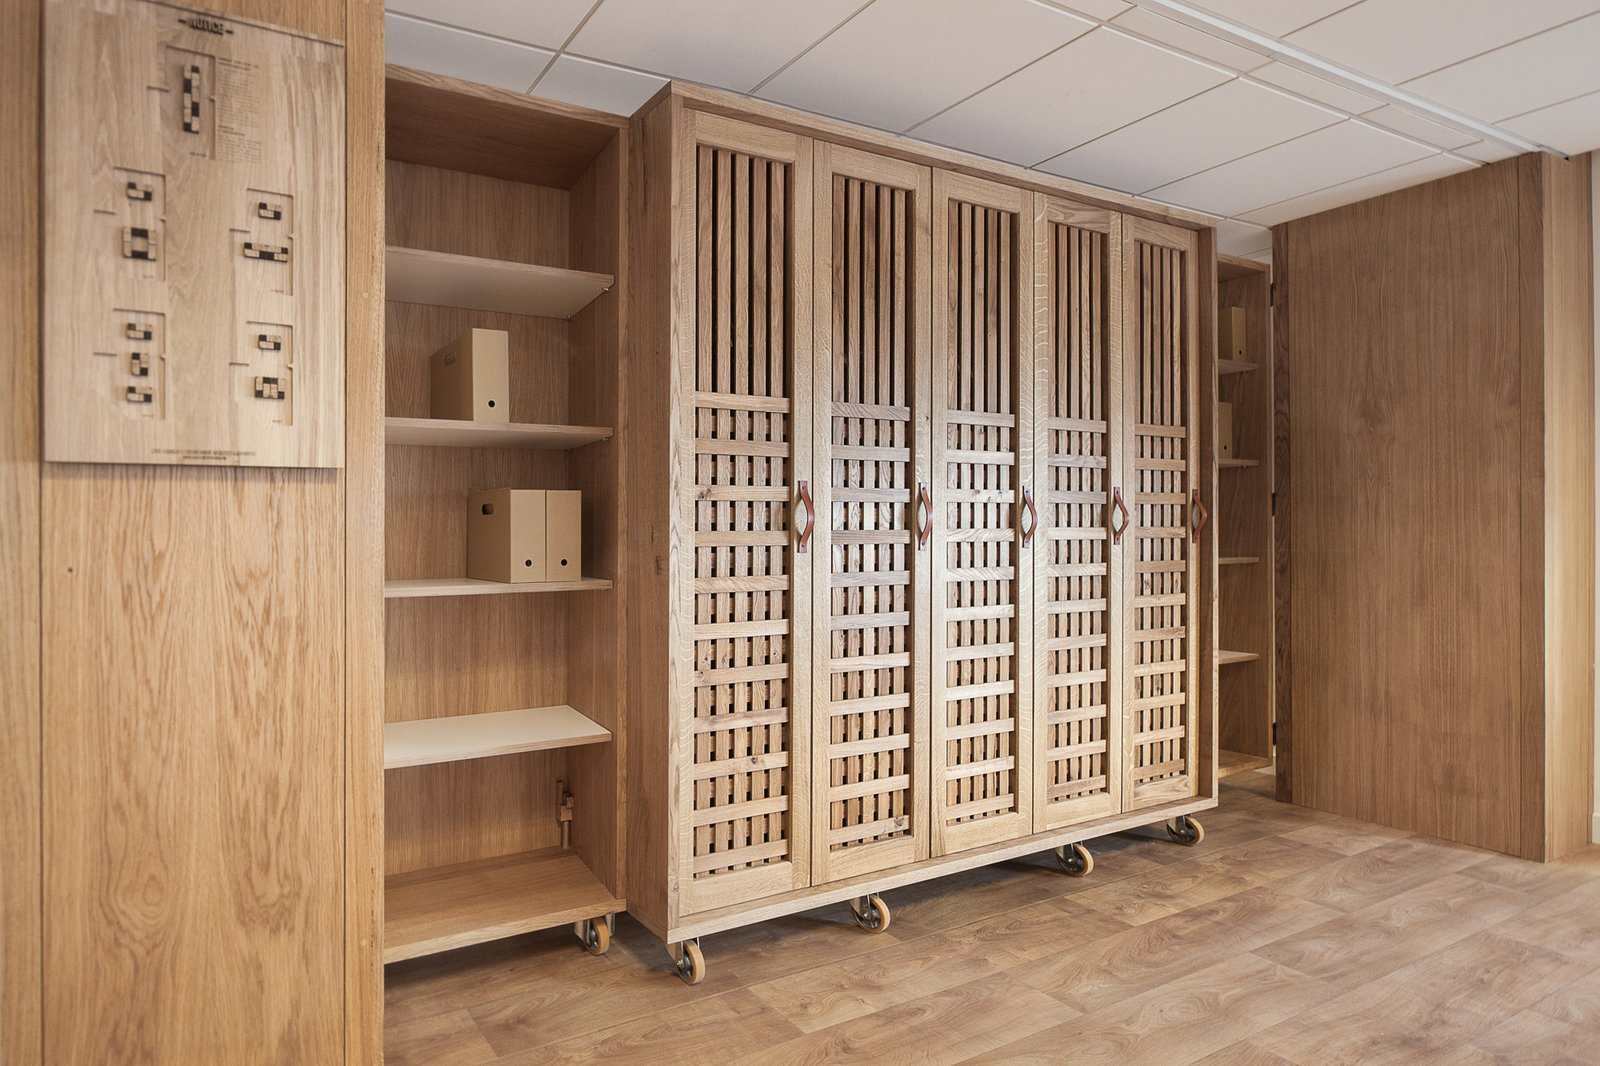 A wooden wardrobe provides storage, while a carved and burnt-wood board provides visual instructions explaining the room's possible configurations  Photo 5 of 6 in A Modular Meeting Room Features a Table with 6 Possible Layouts